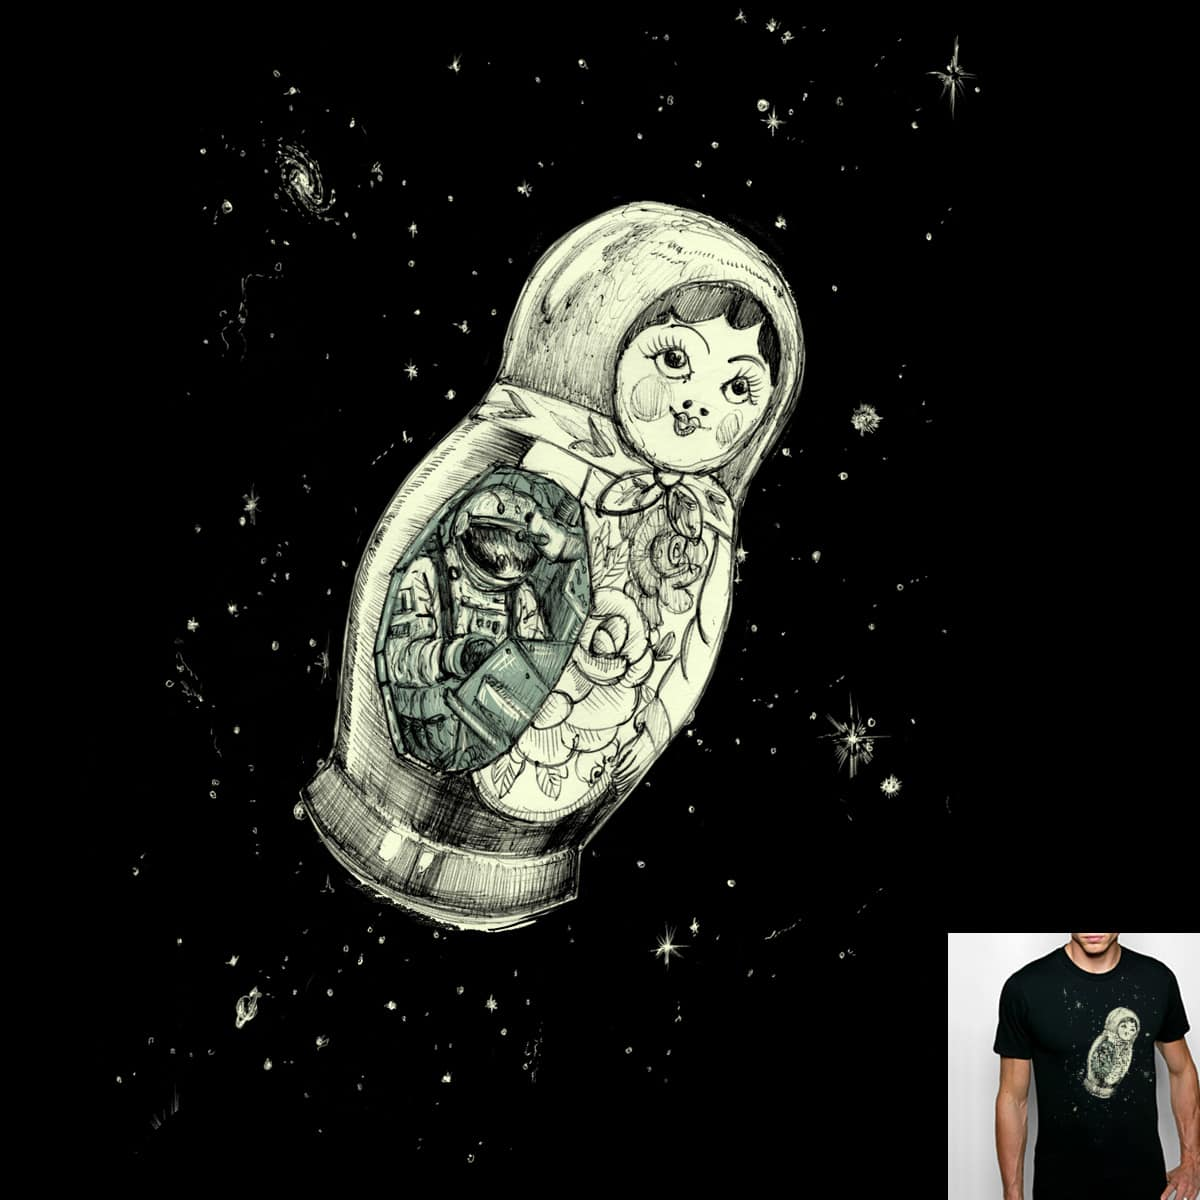 Cosmonaut by danrule on Threadless